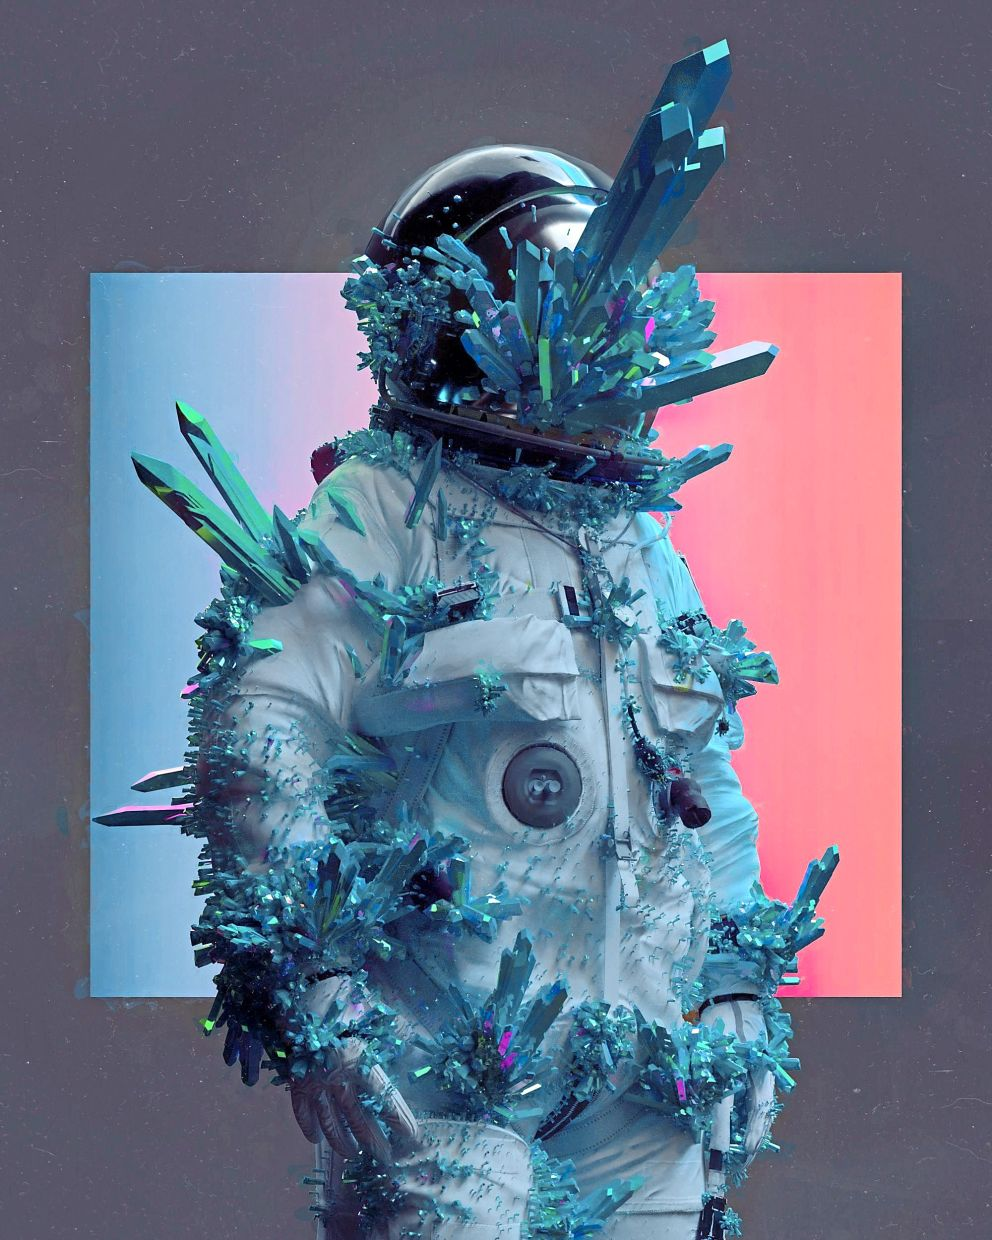 An image form the collage Everydays: The First 5000 Days by digital artist Beeple. — Reuters